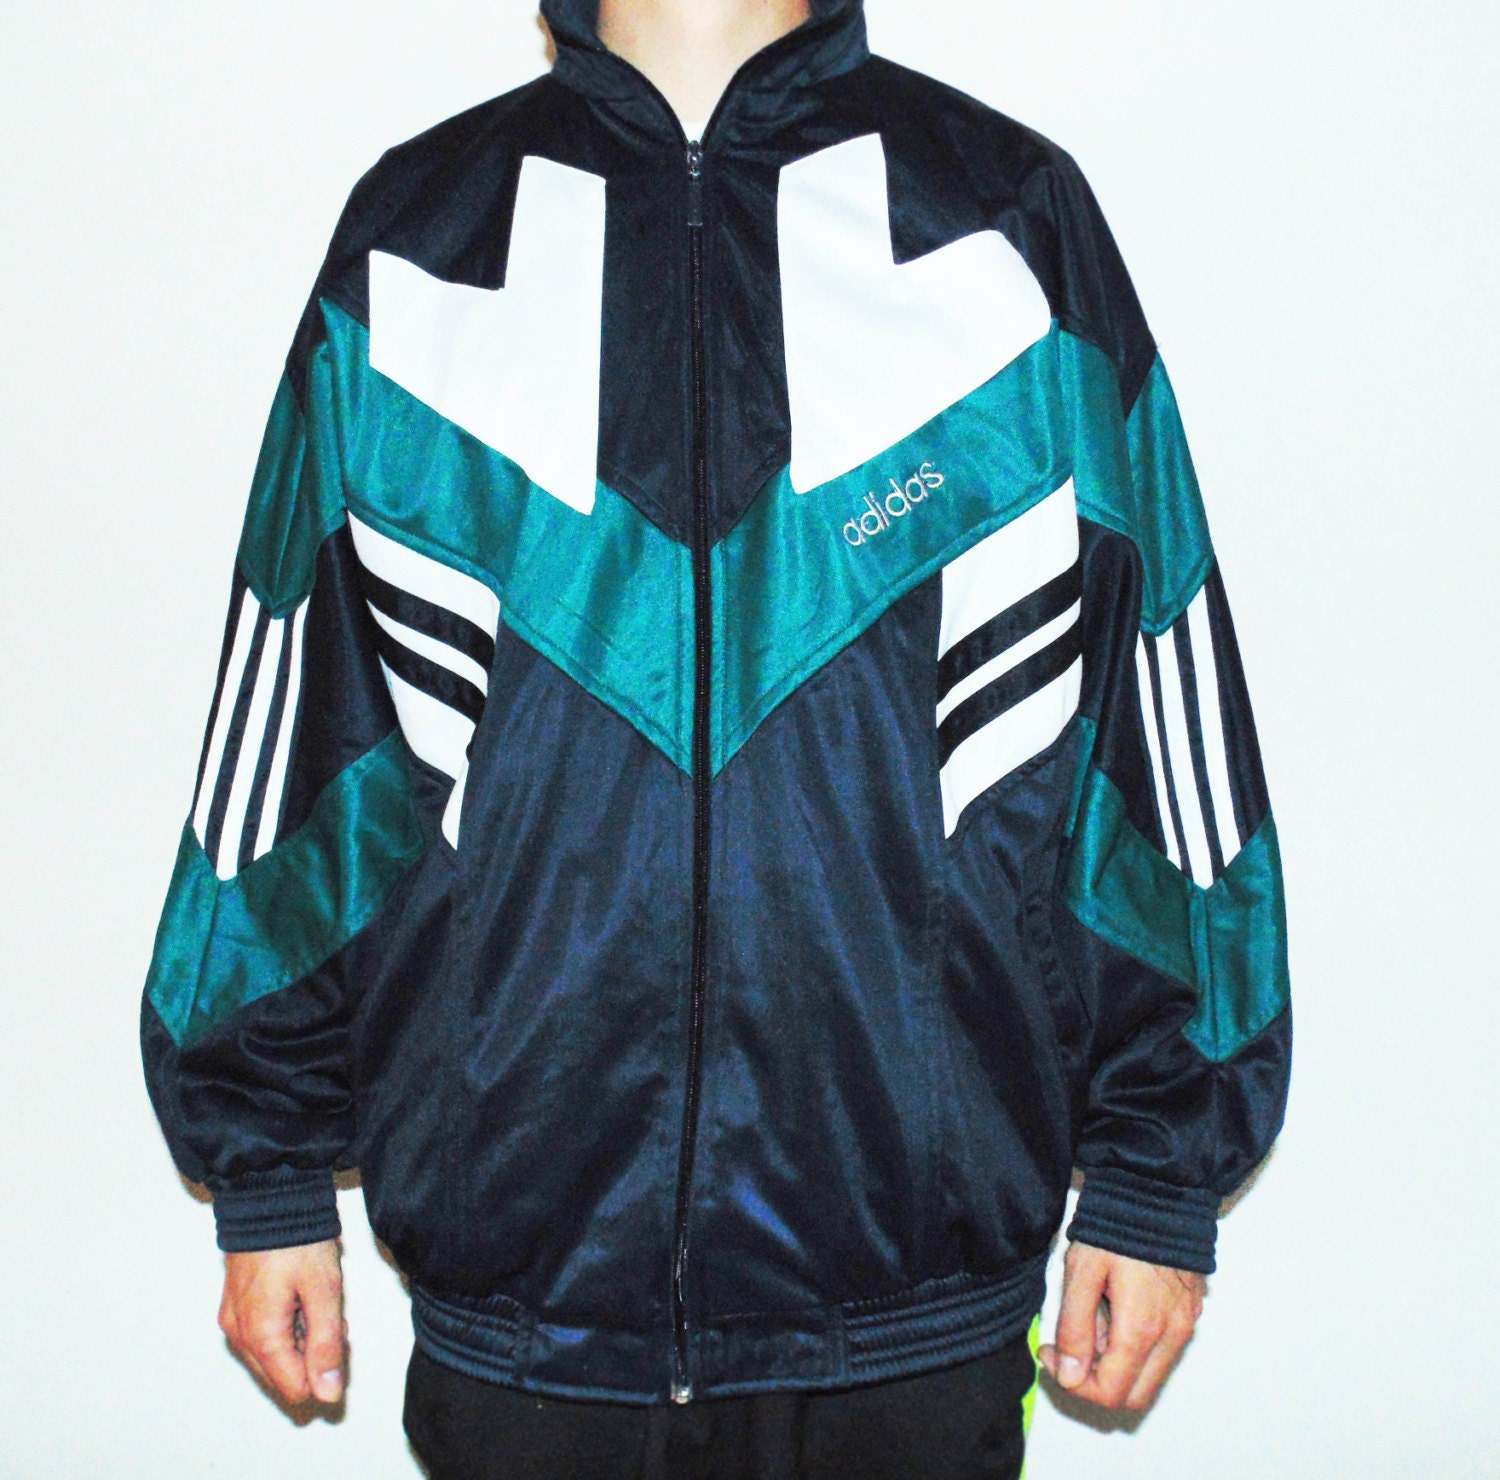 veste survetement adidas vintage